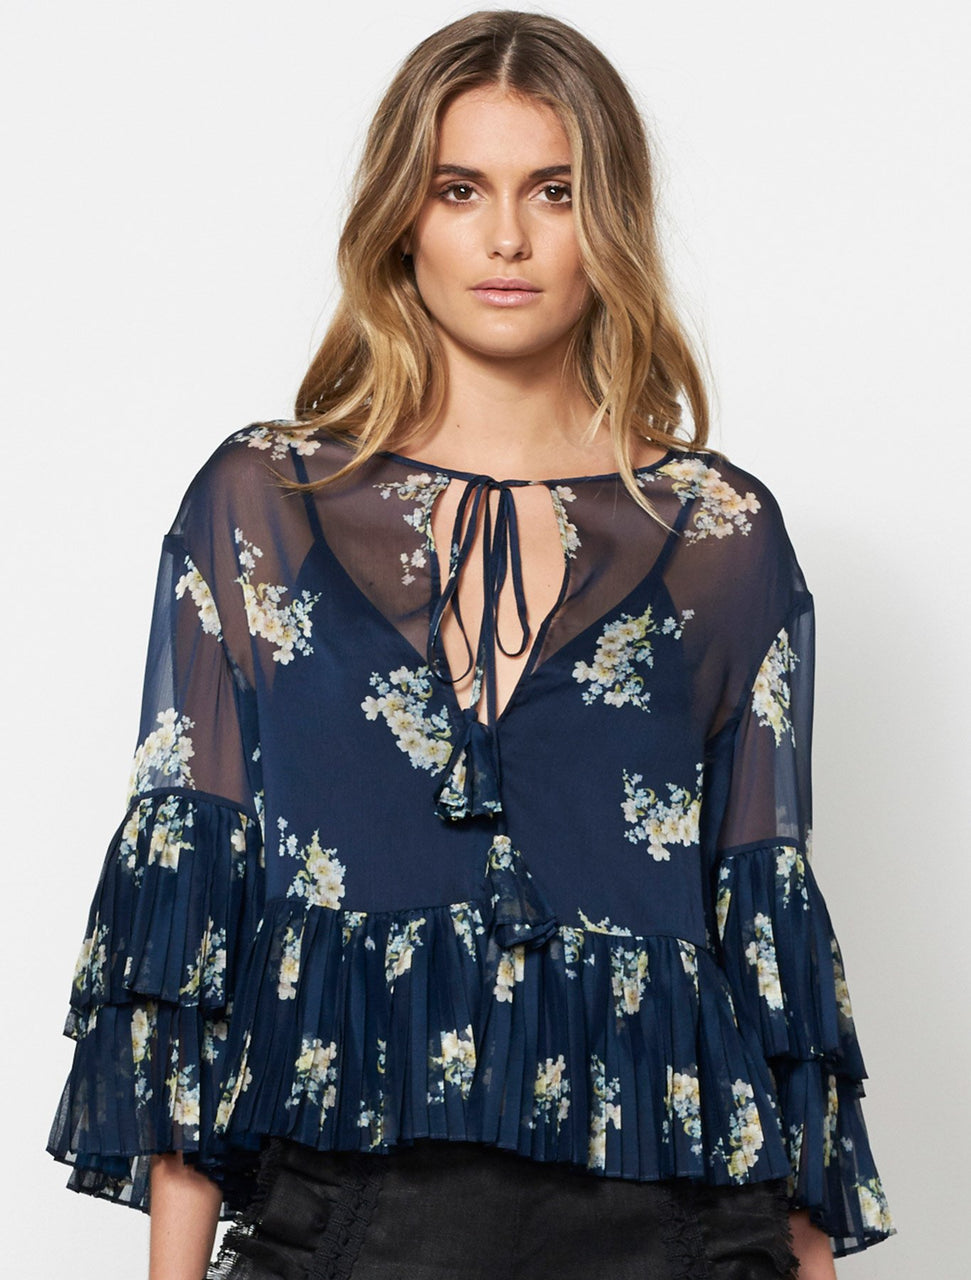 Stevie May Midnight Blooms L/S Top